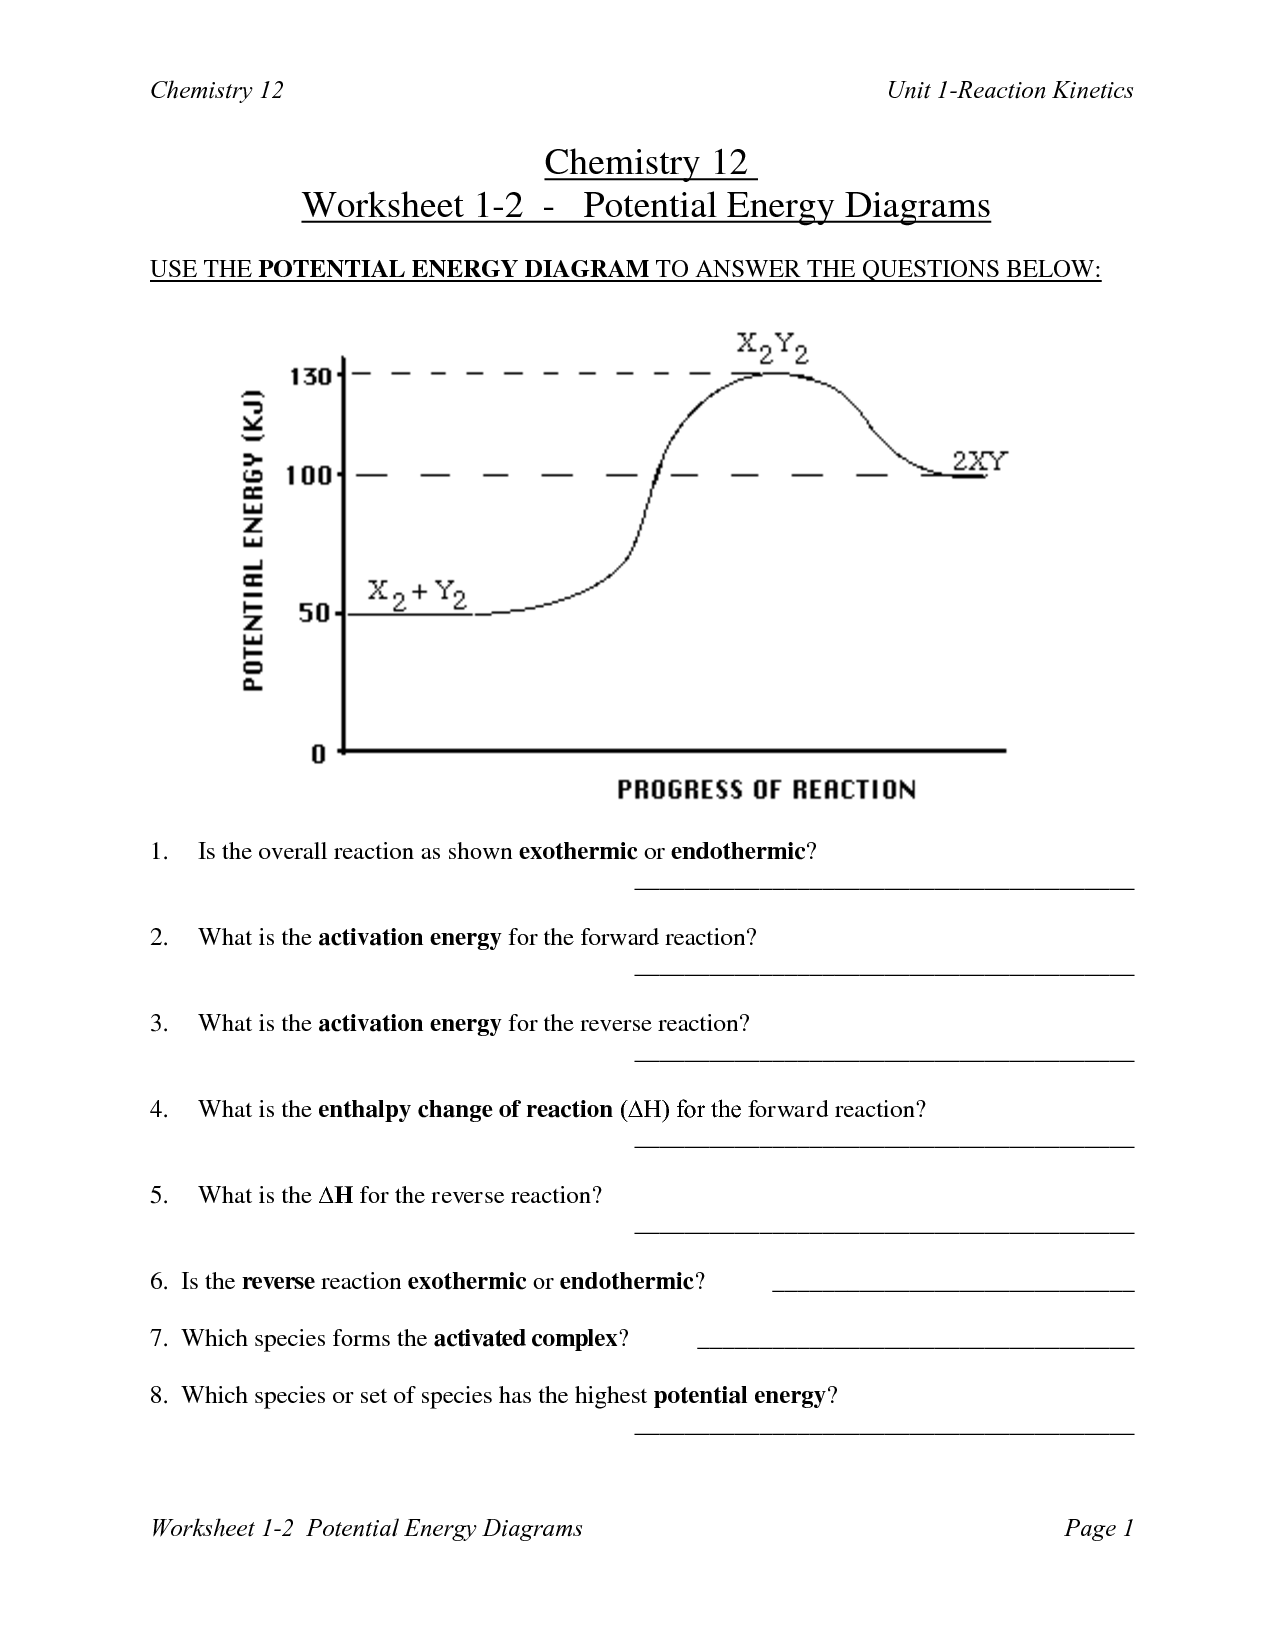 10 Best Images Of Kinetic Energy Worksheet With Answers